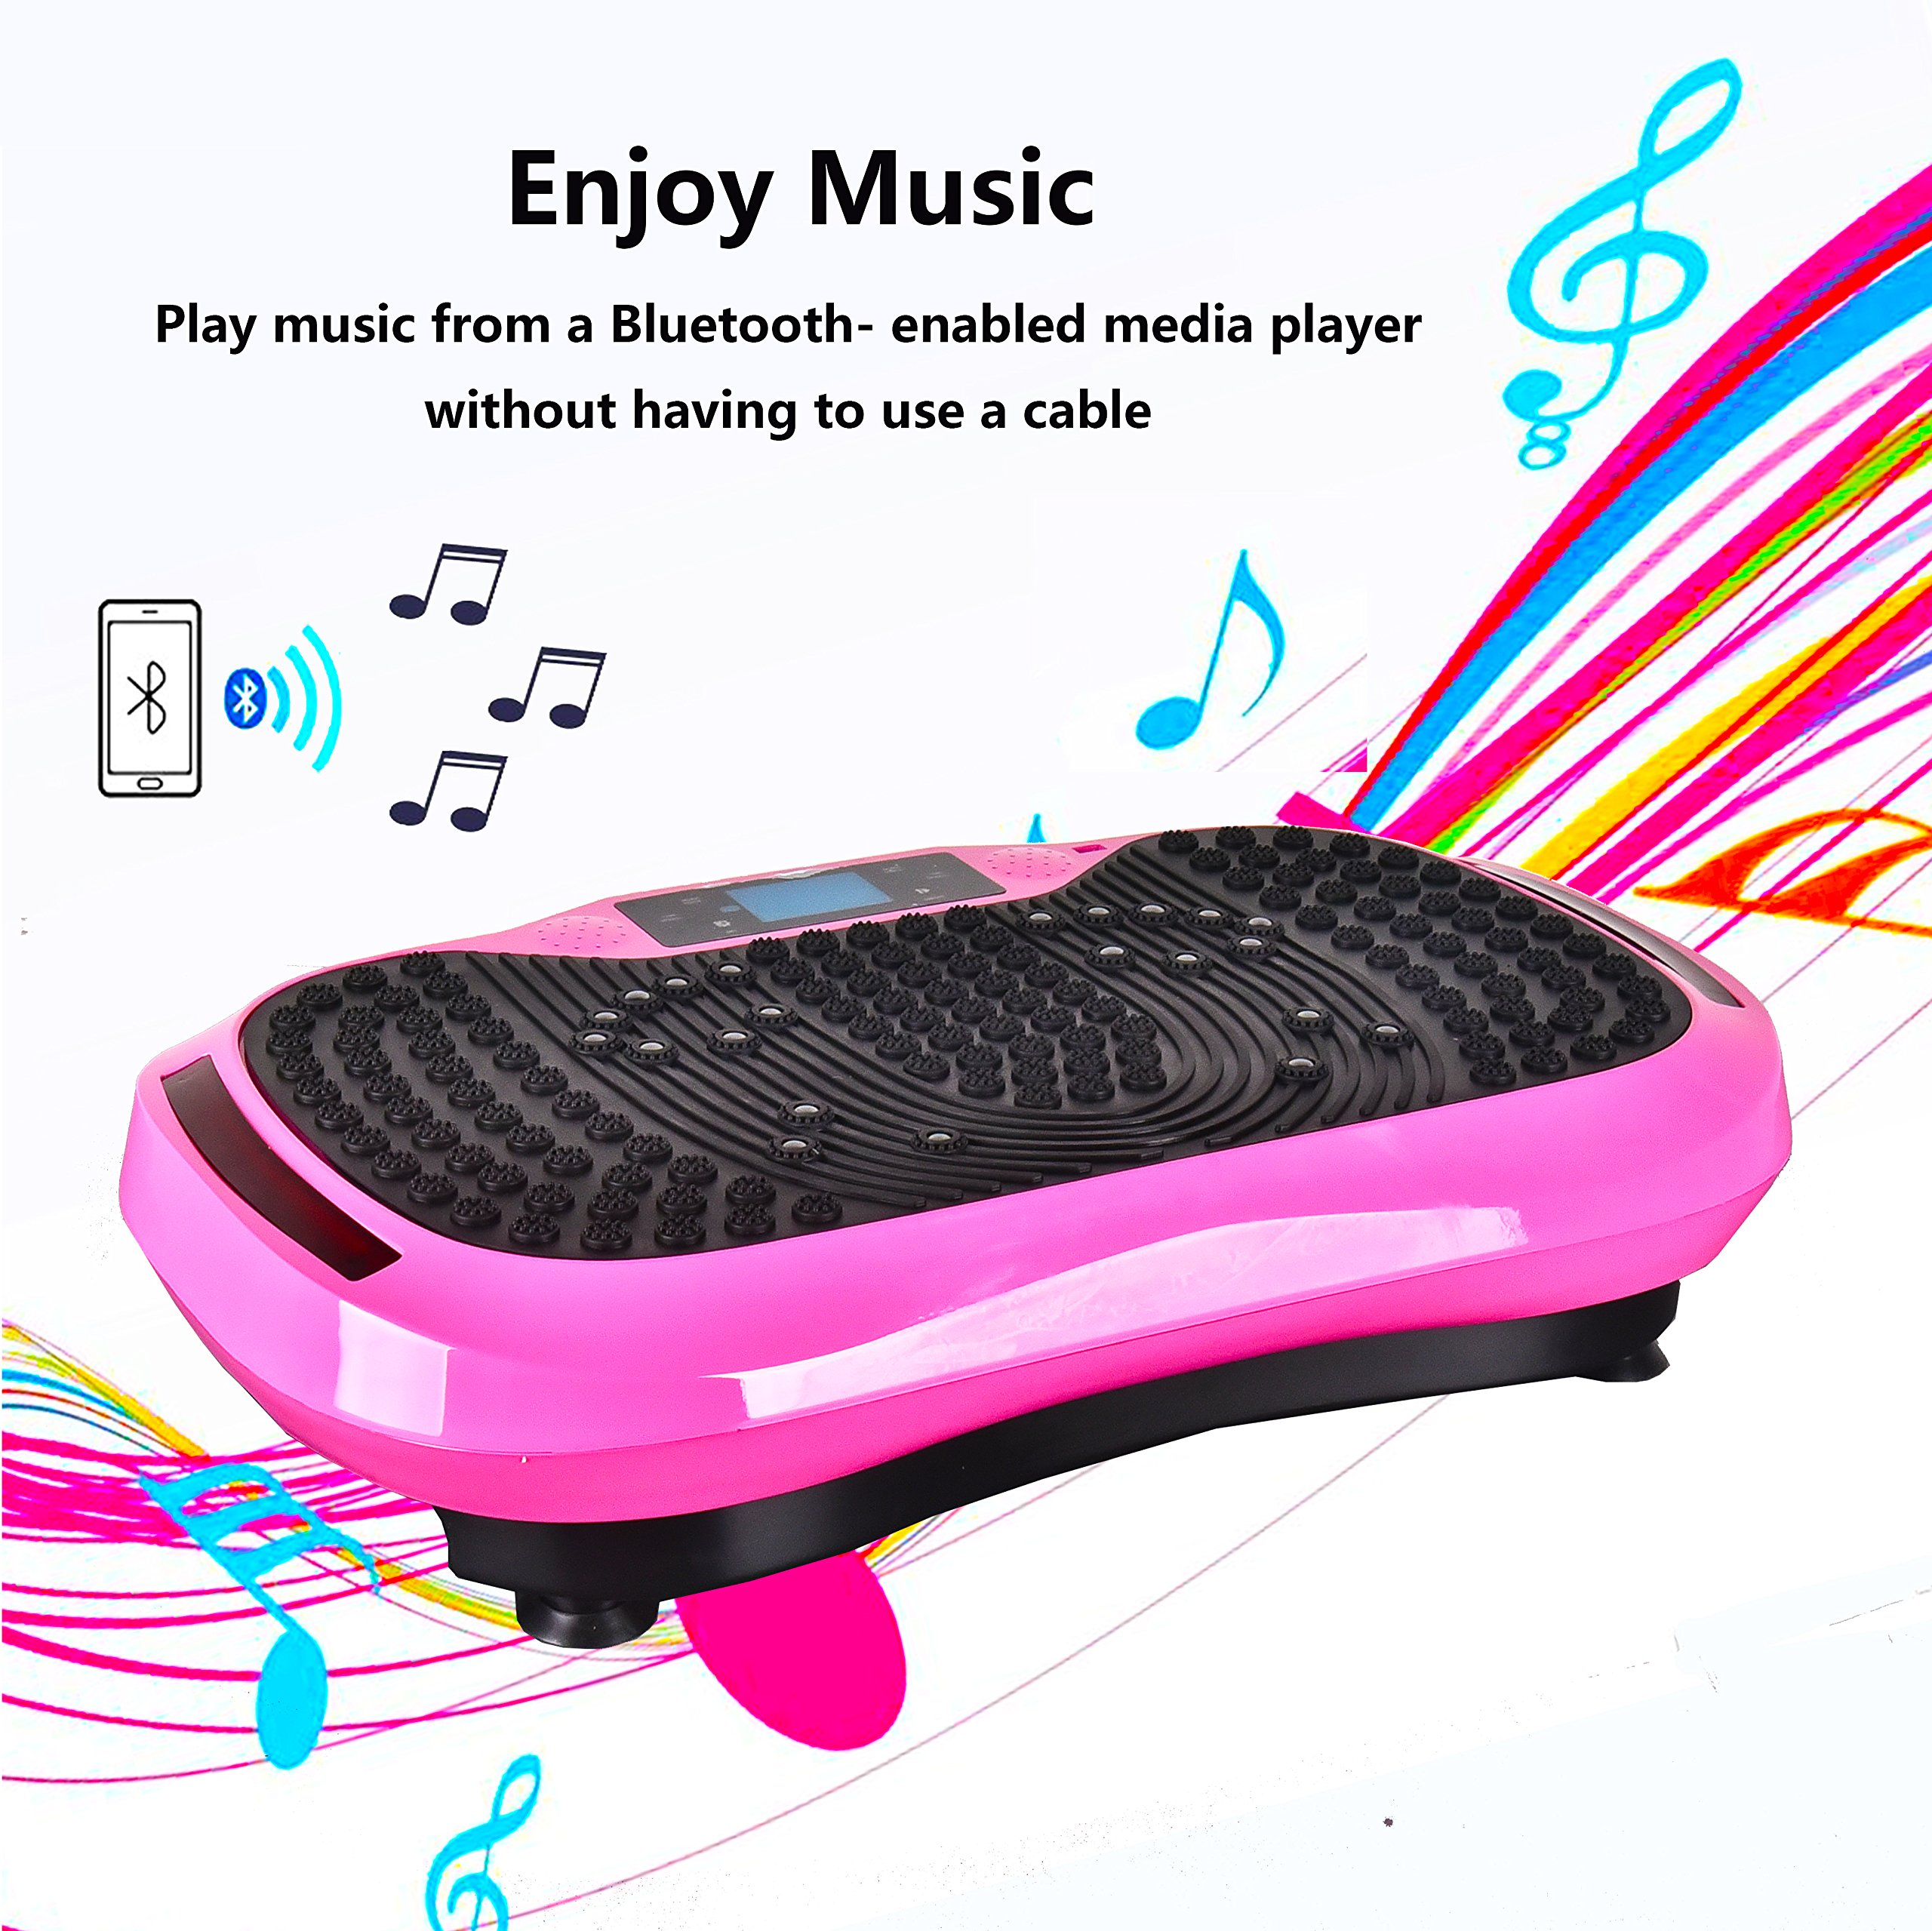 Reliancer Built-in Music Player Fitness Vibration Platform Whole Full Body Shaped Crazy Fit Plate Massage Workout Trainer Exercise Machine Plate w/Integrated USB Port&LED Light (W/Music-Pink) by Reliancer (Image #2)